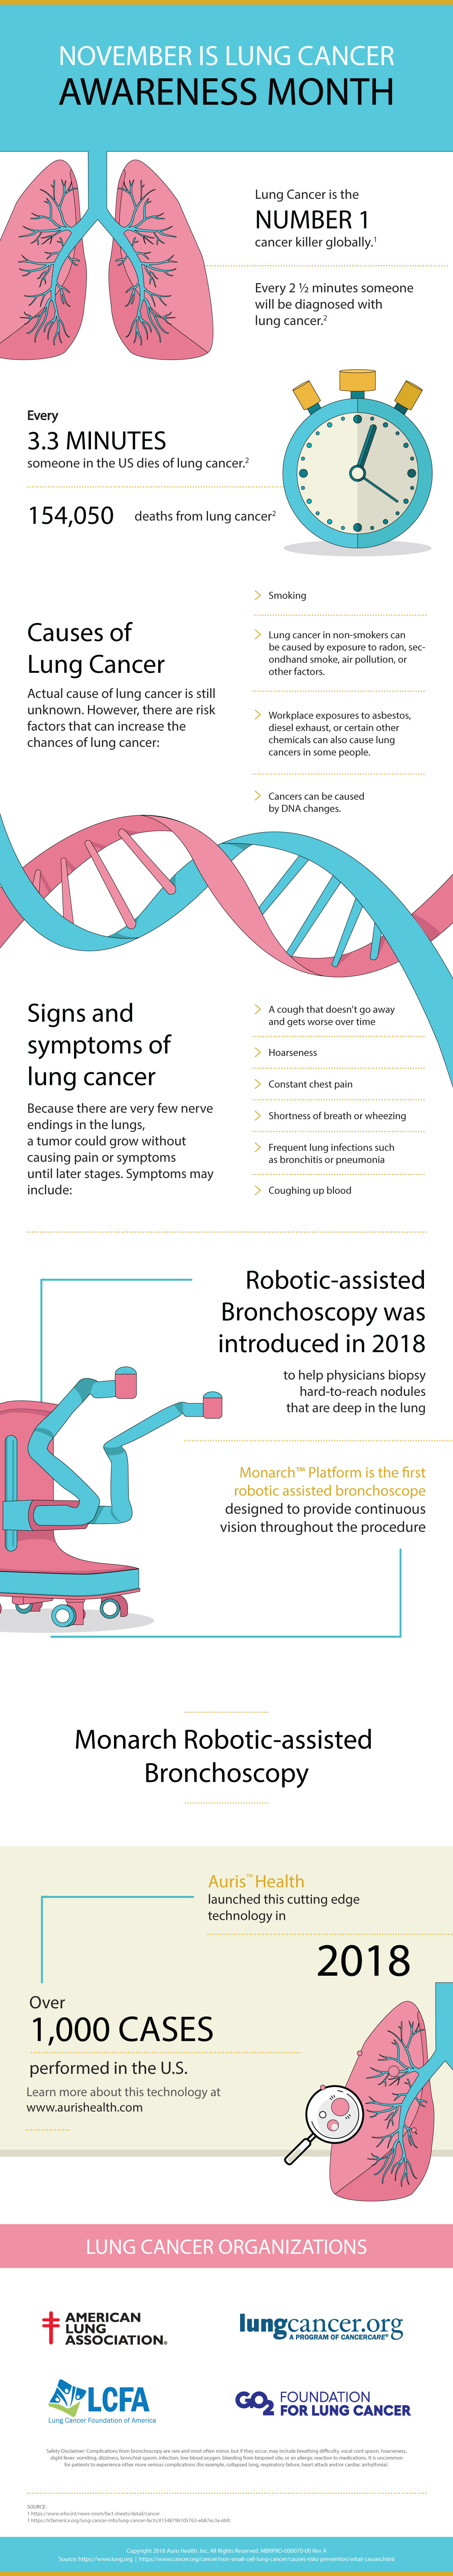 MBRPRO-000070-00-Rev-A-Lung-Cancer-Month-Infographic lr